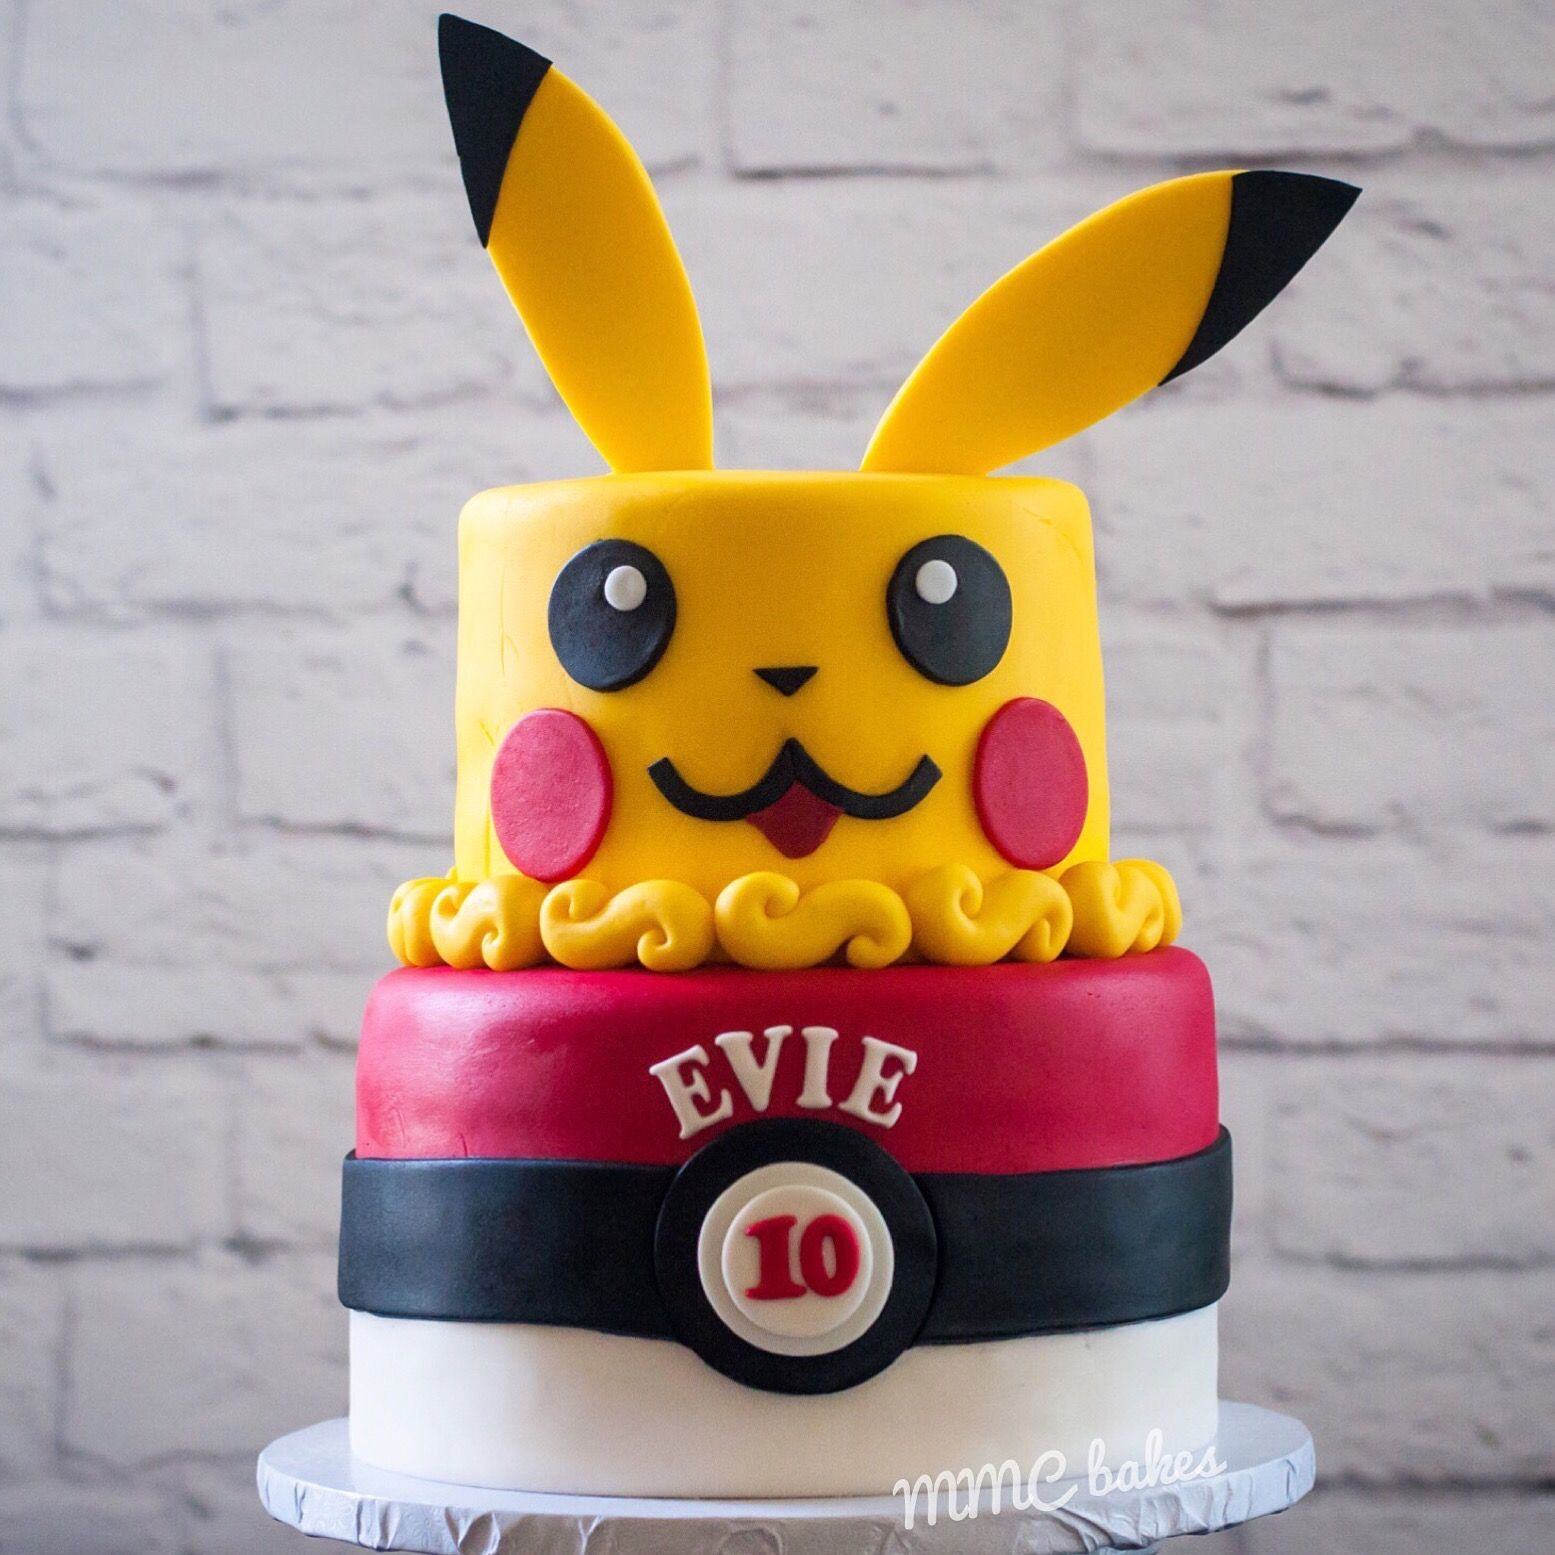 pikachu pokemon cake fondant pokemongo cake custom cakes by mmc bakes san diego chula. Black Bedroom Furniture Sets. Home Design Ideas